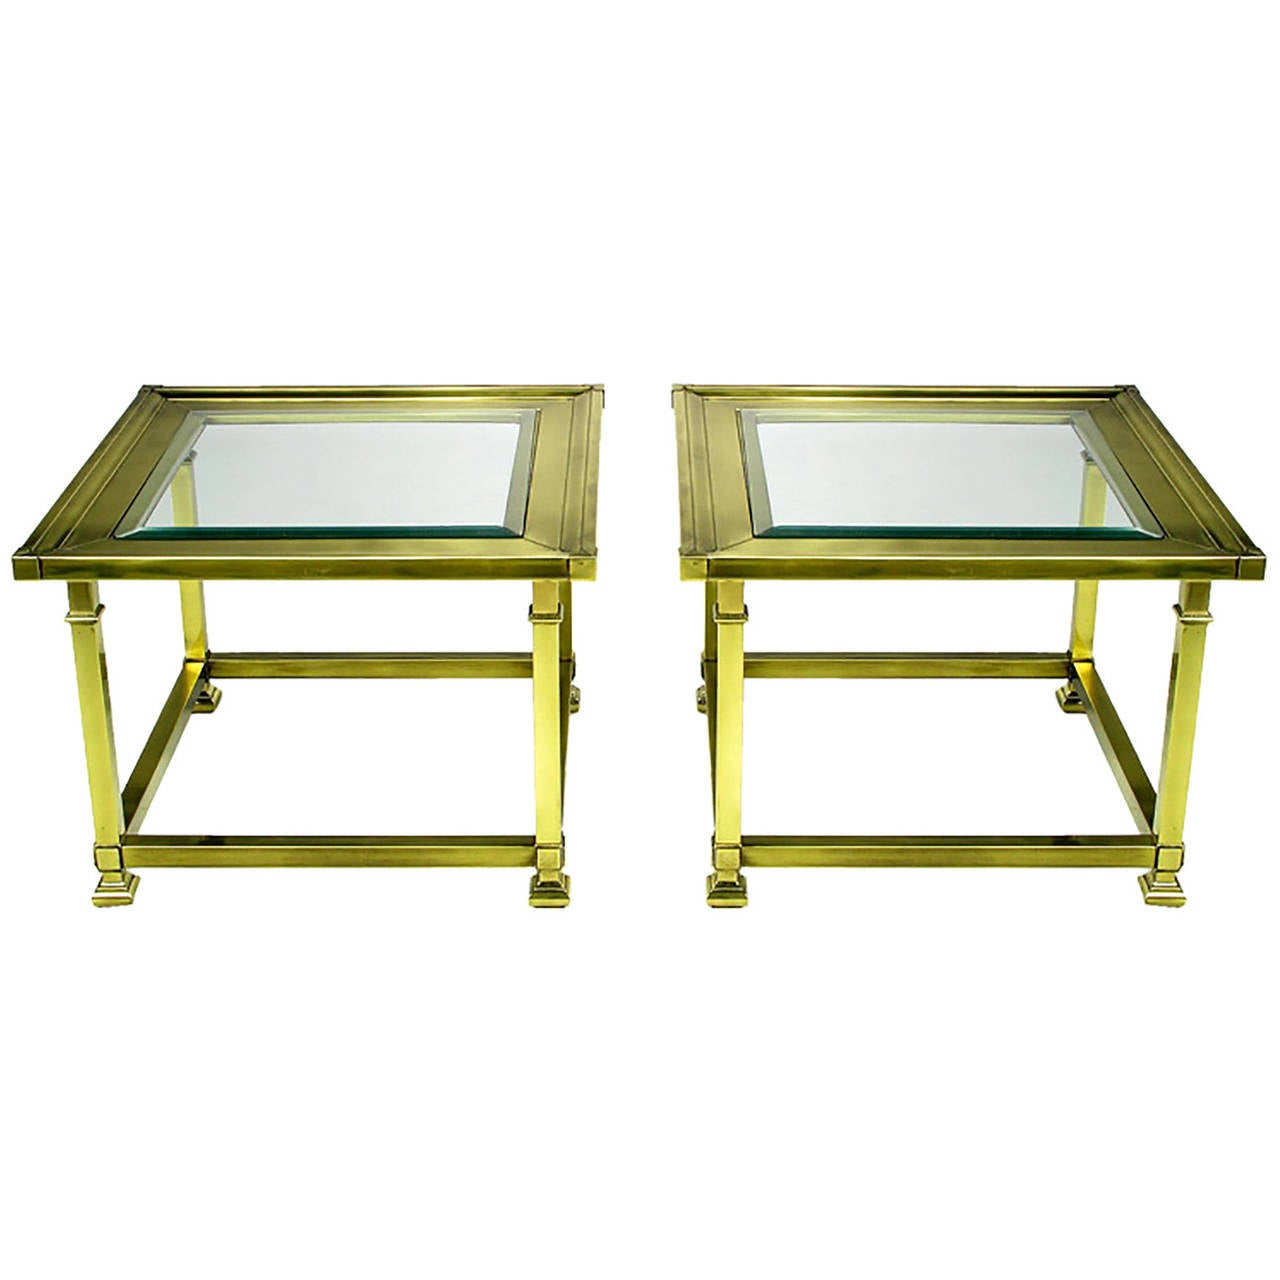 Pair of Classic Brass Picture-Frame End Tables by Mastercraft